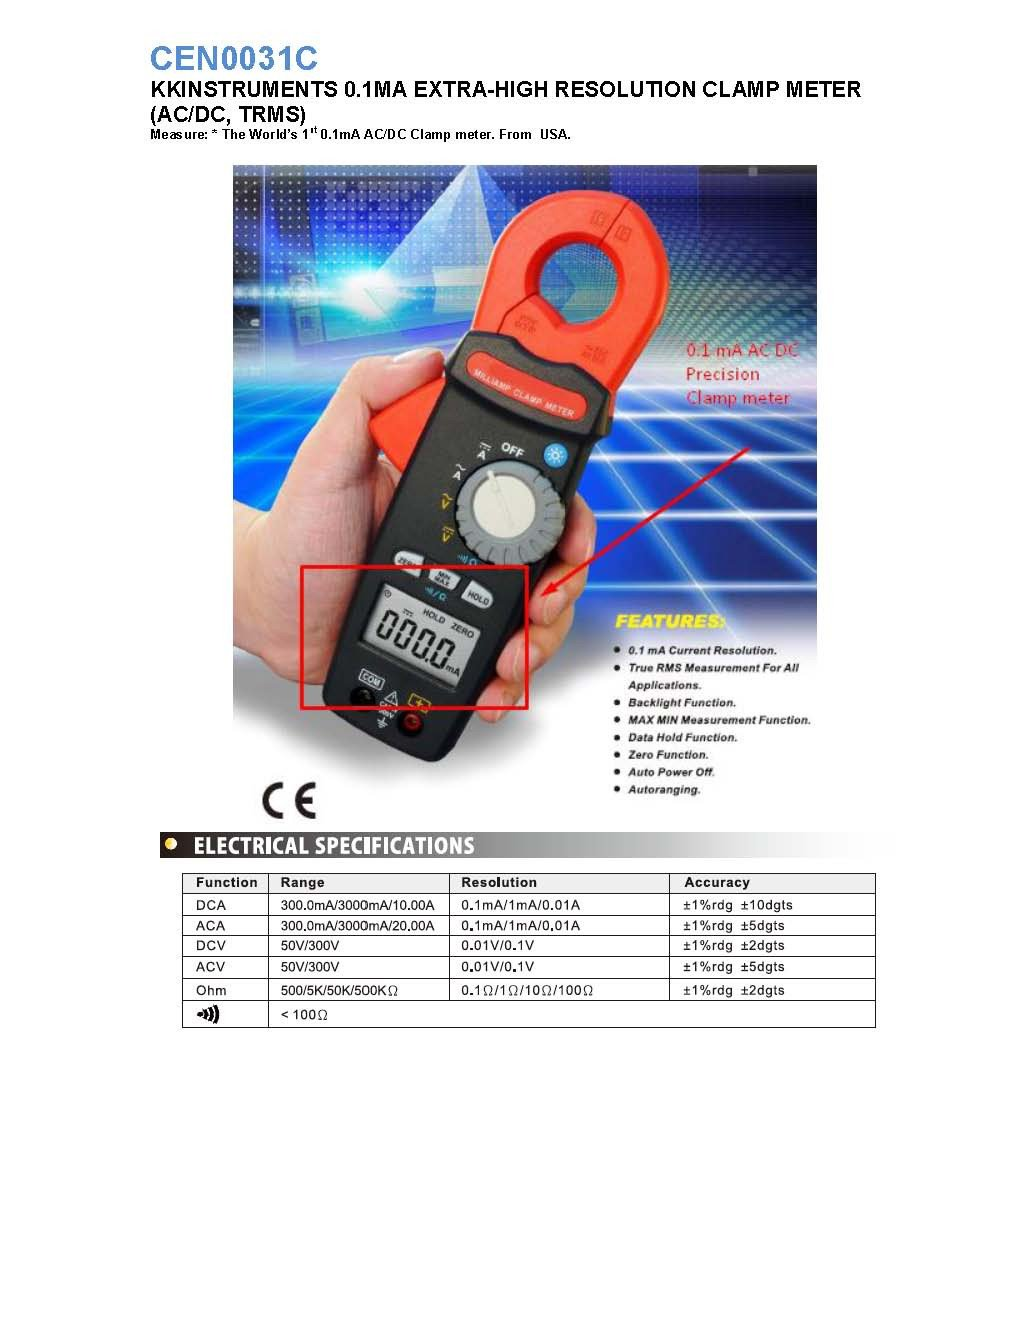 Cen0031c kkinstruments 01ma extra high resolution clamp meter ac cen0031c usa ma acdc clamp meterpage1 ccuart Choice Image